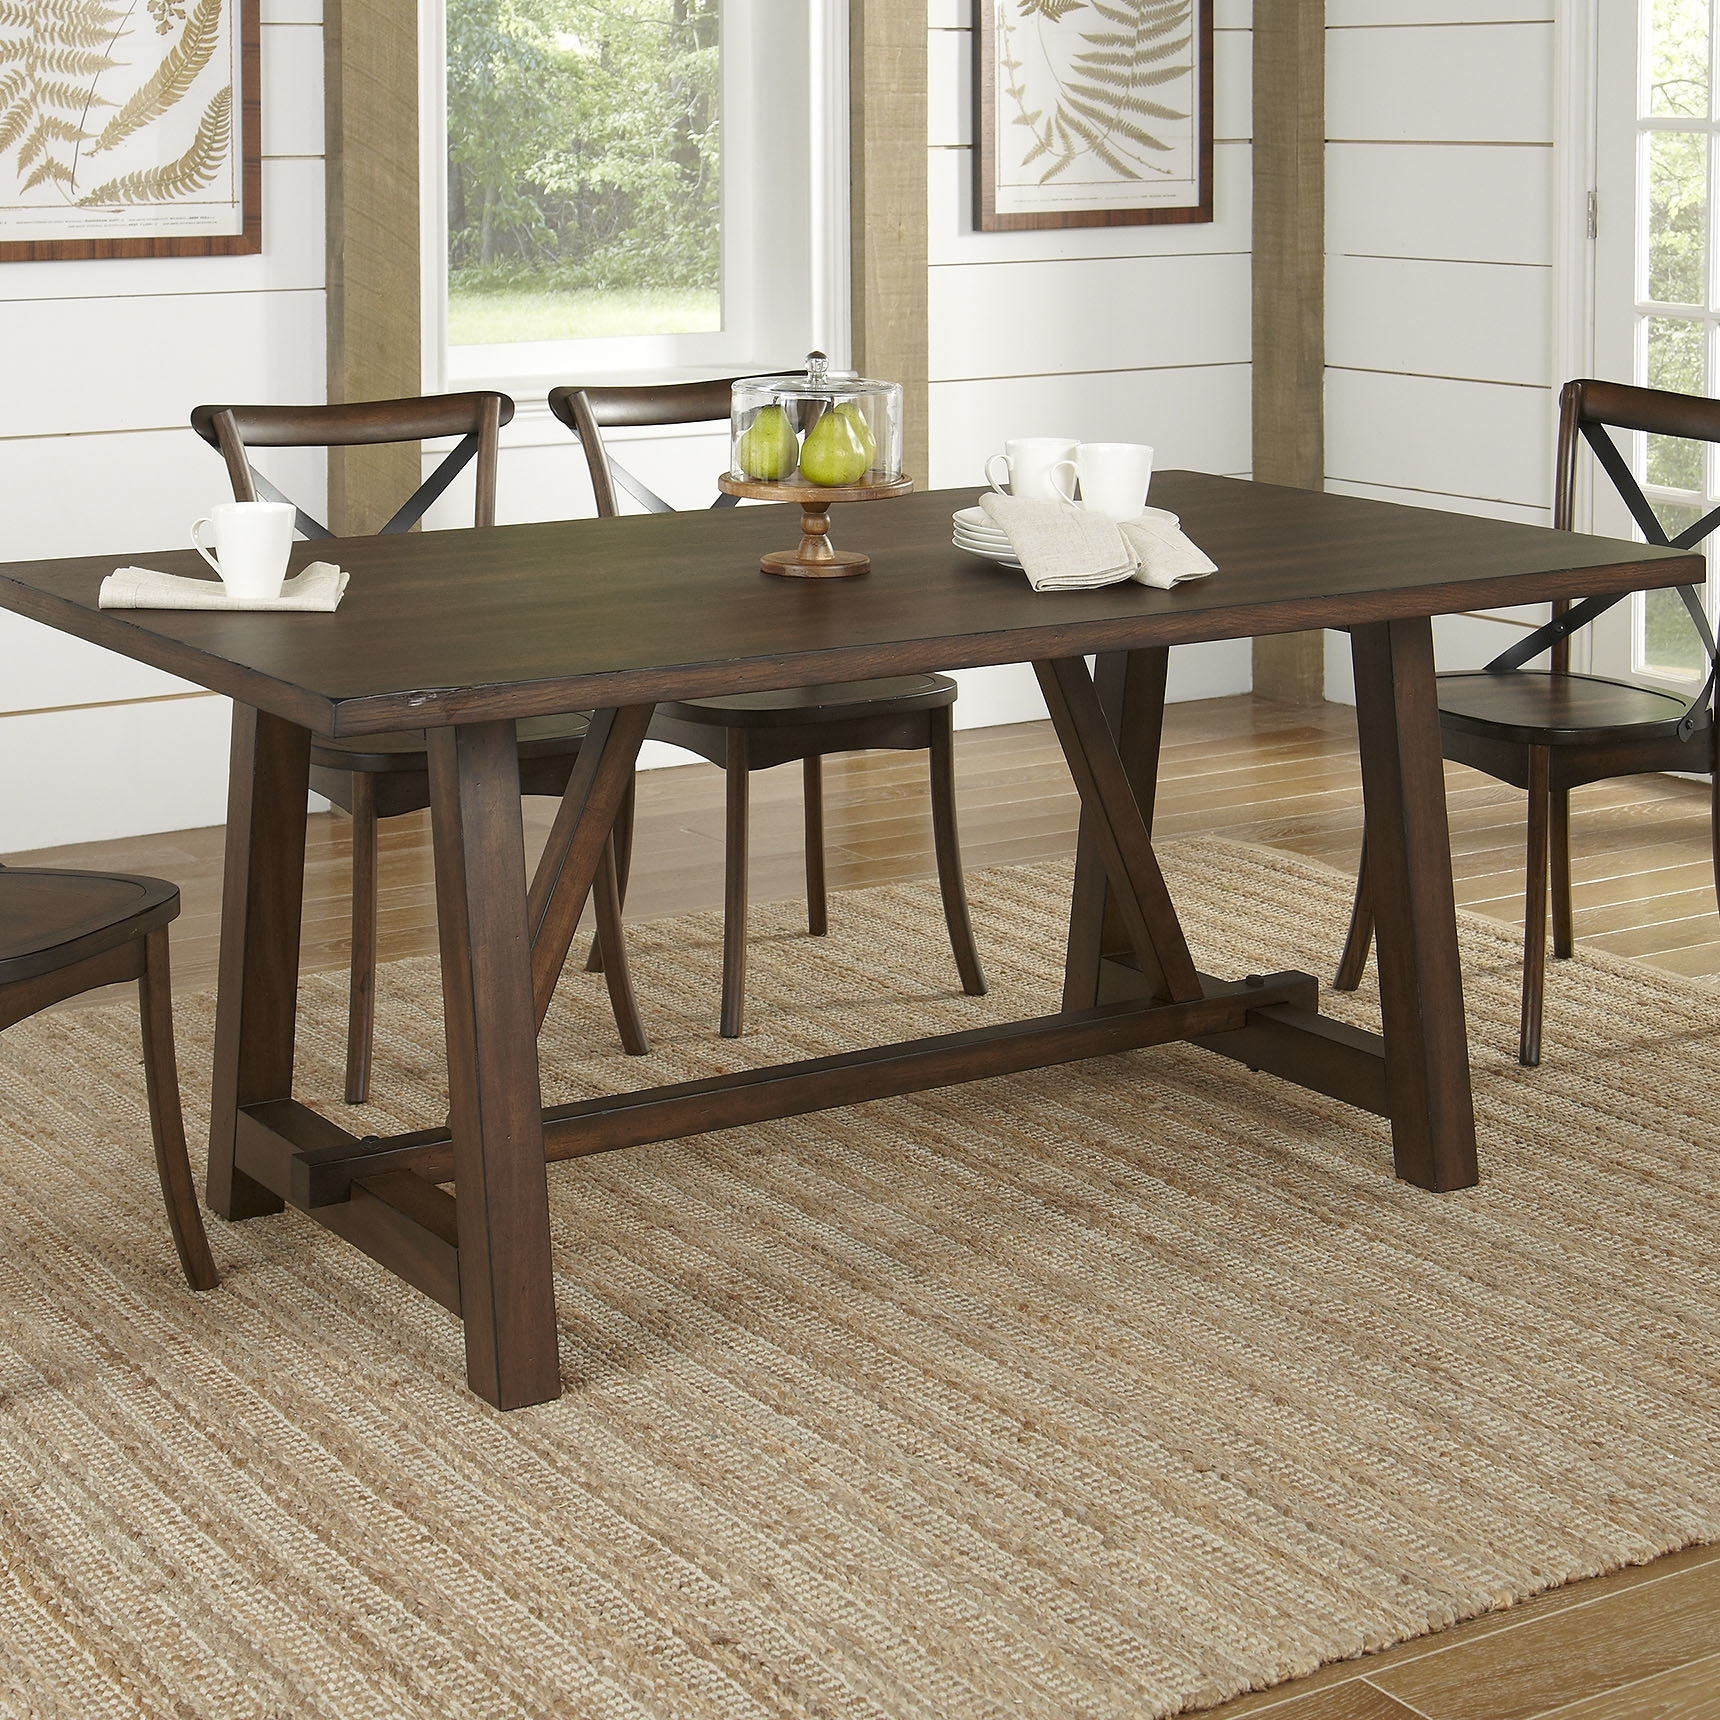 Wayfair Inside Laurent 7 Piece Rectangle Dining Sets With Wood And Host Chairs (View 12 of 25)